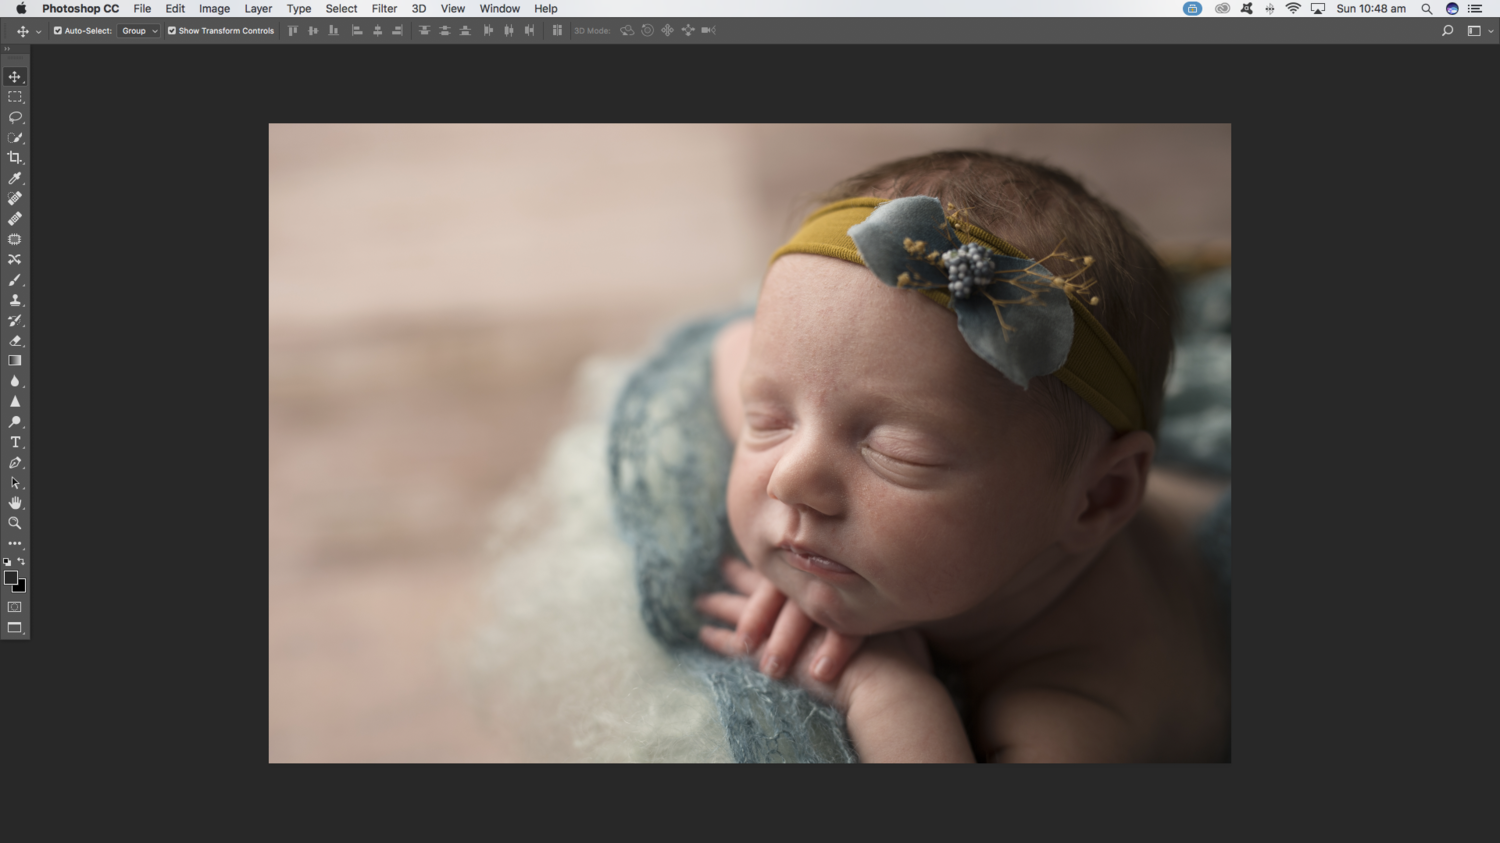 Photoshop CC open file tabs are missing  - Photoshop / Elements